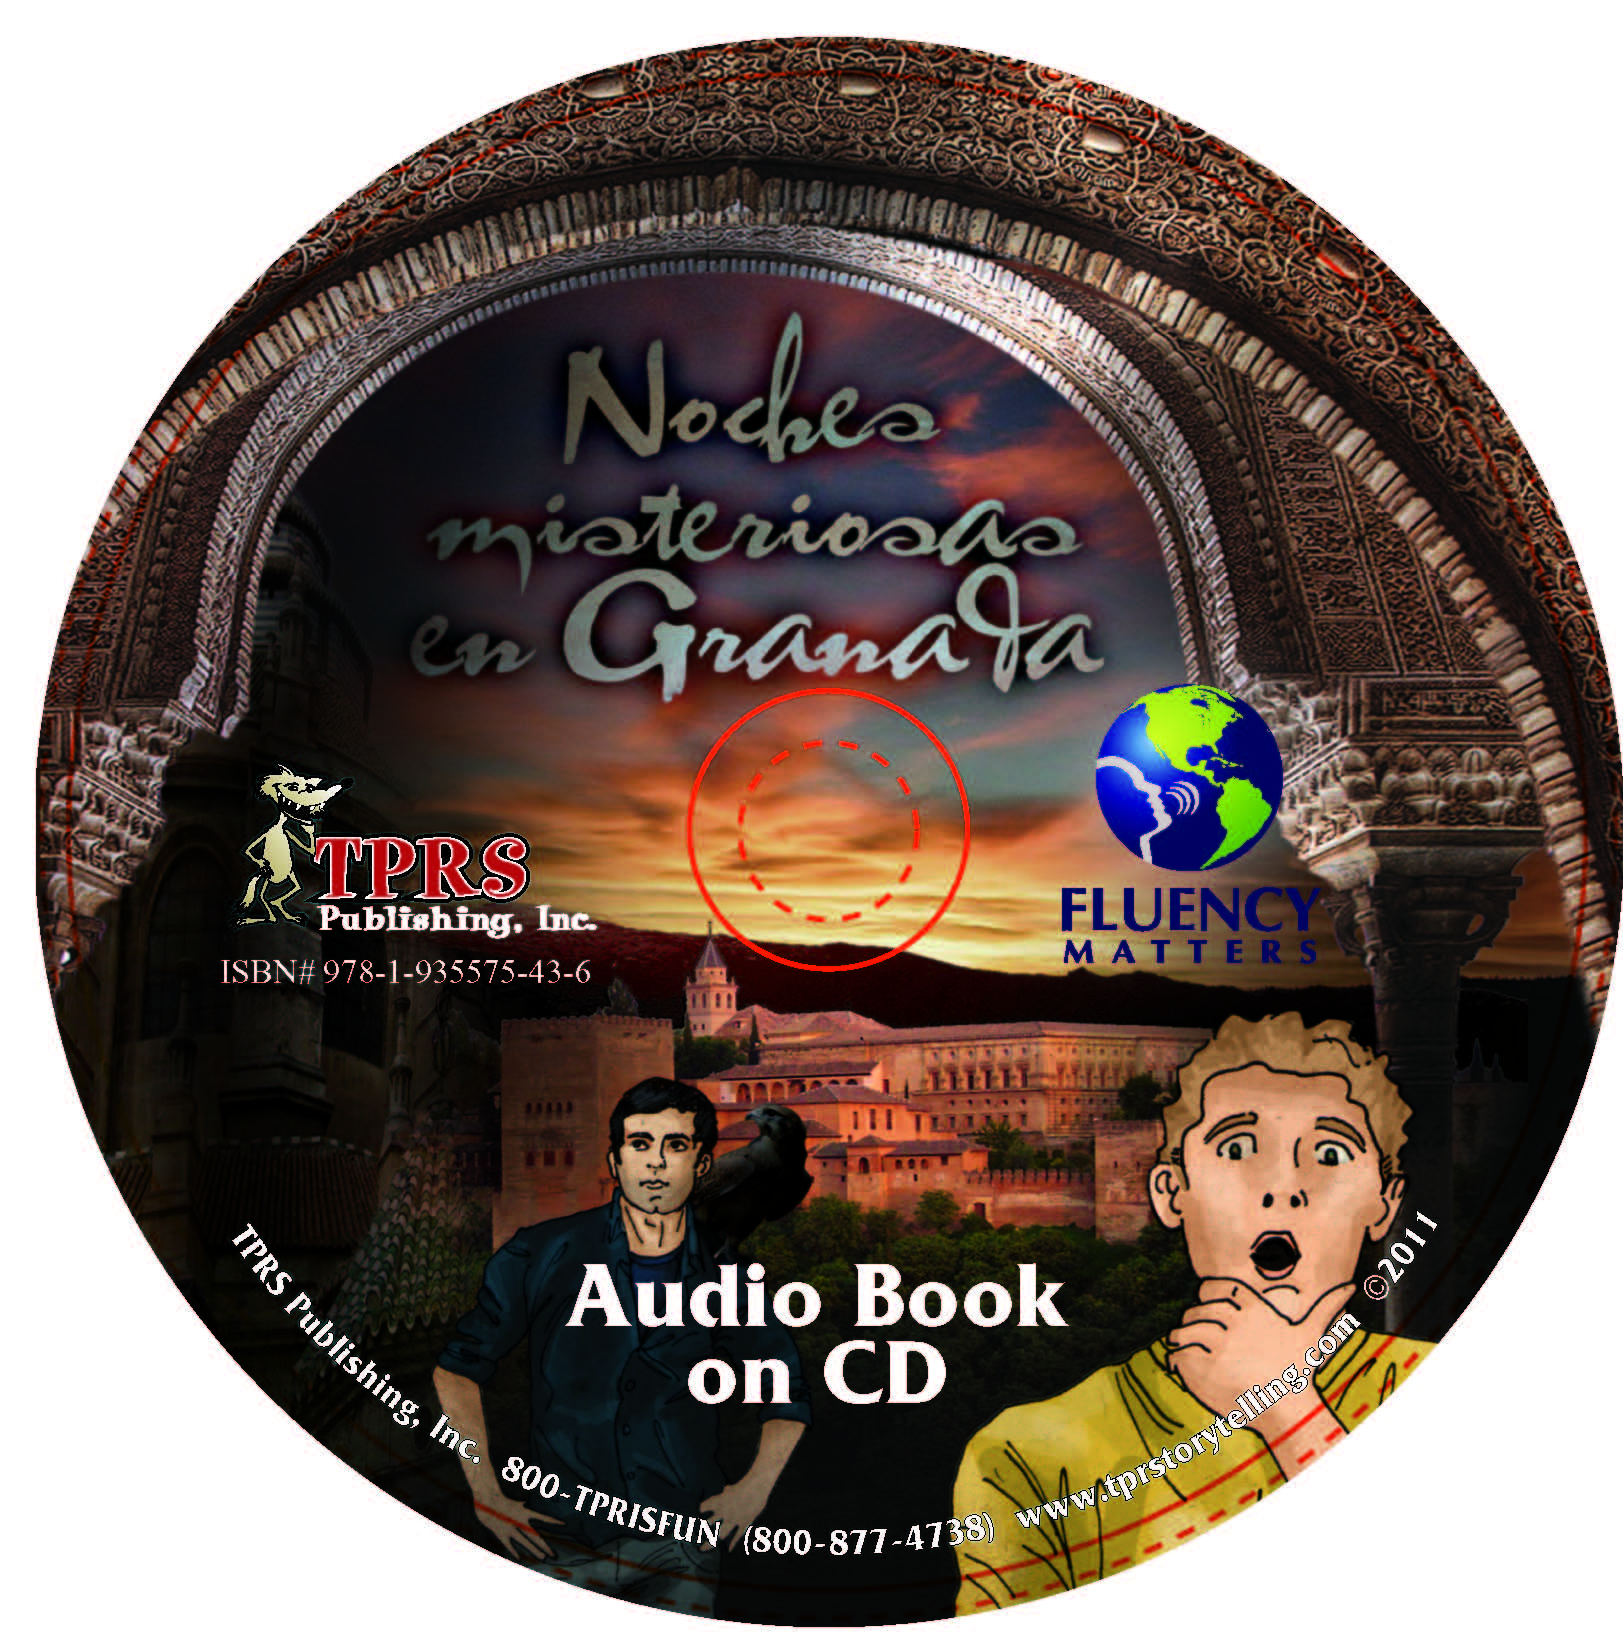 Noches misteriosas en Granada – Audio Book on CD